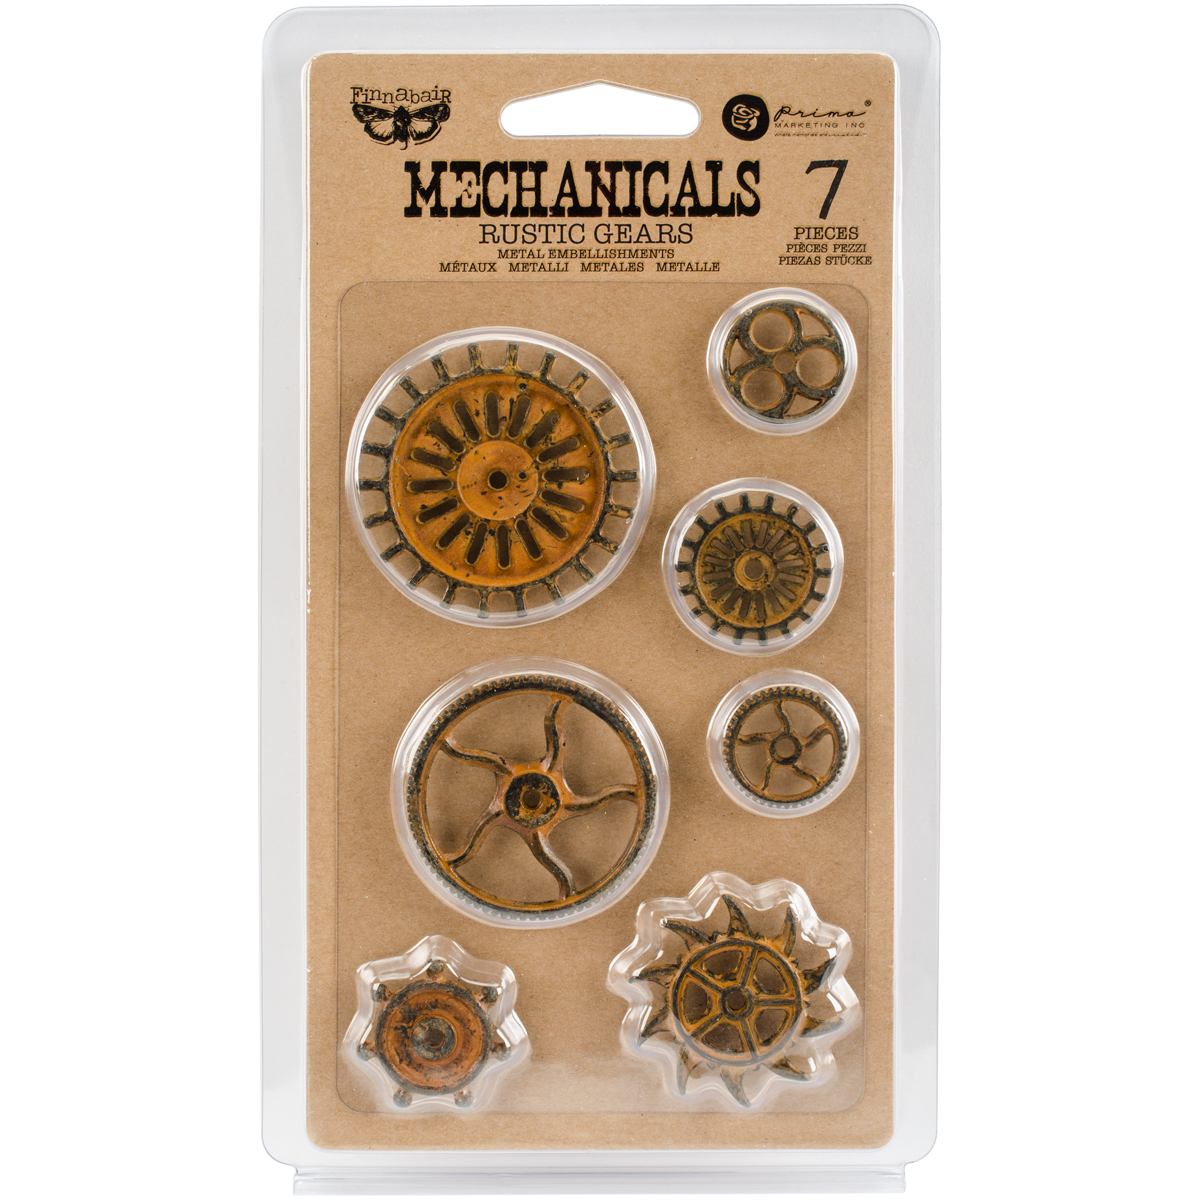 Finnabair Mechanicals Rusty Gears